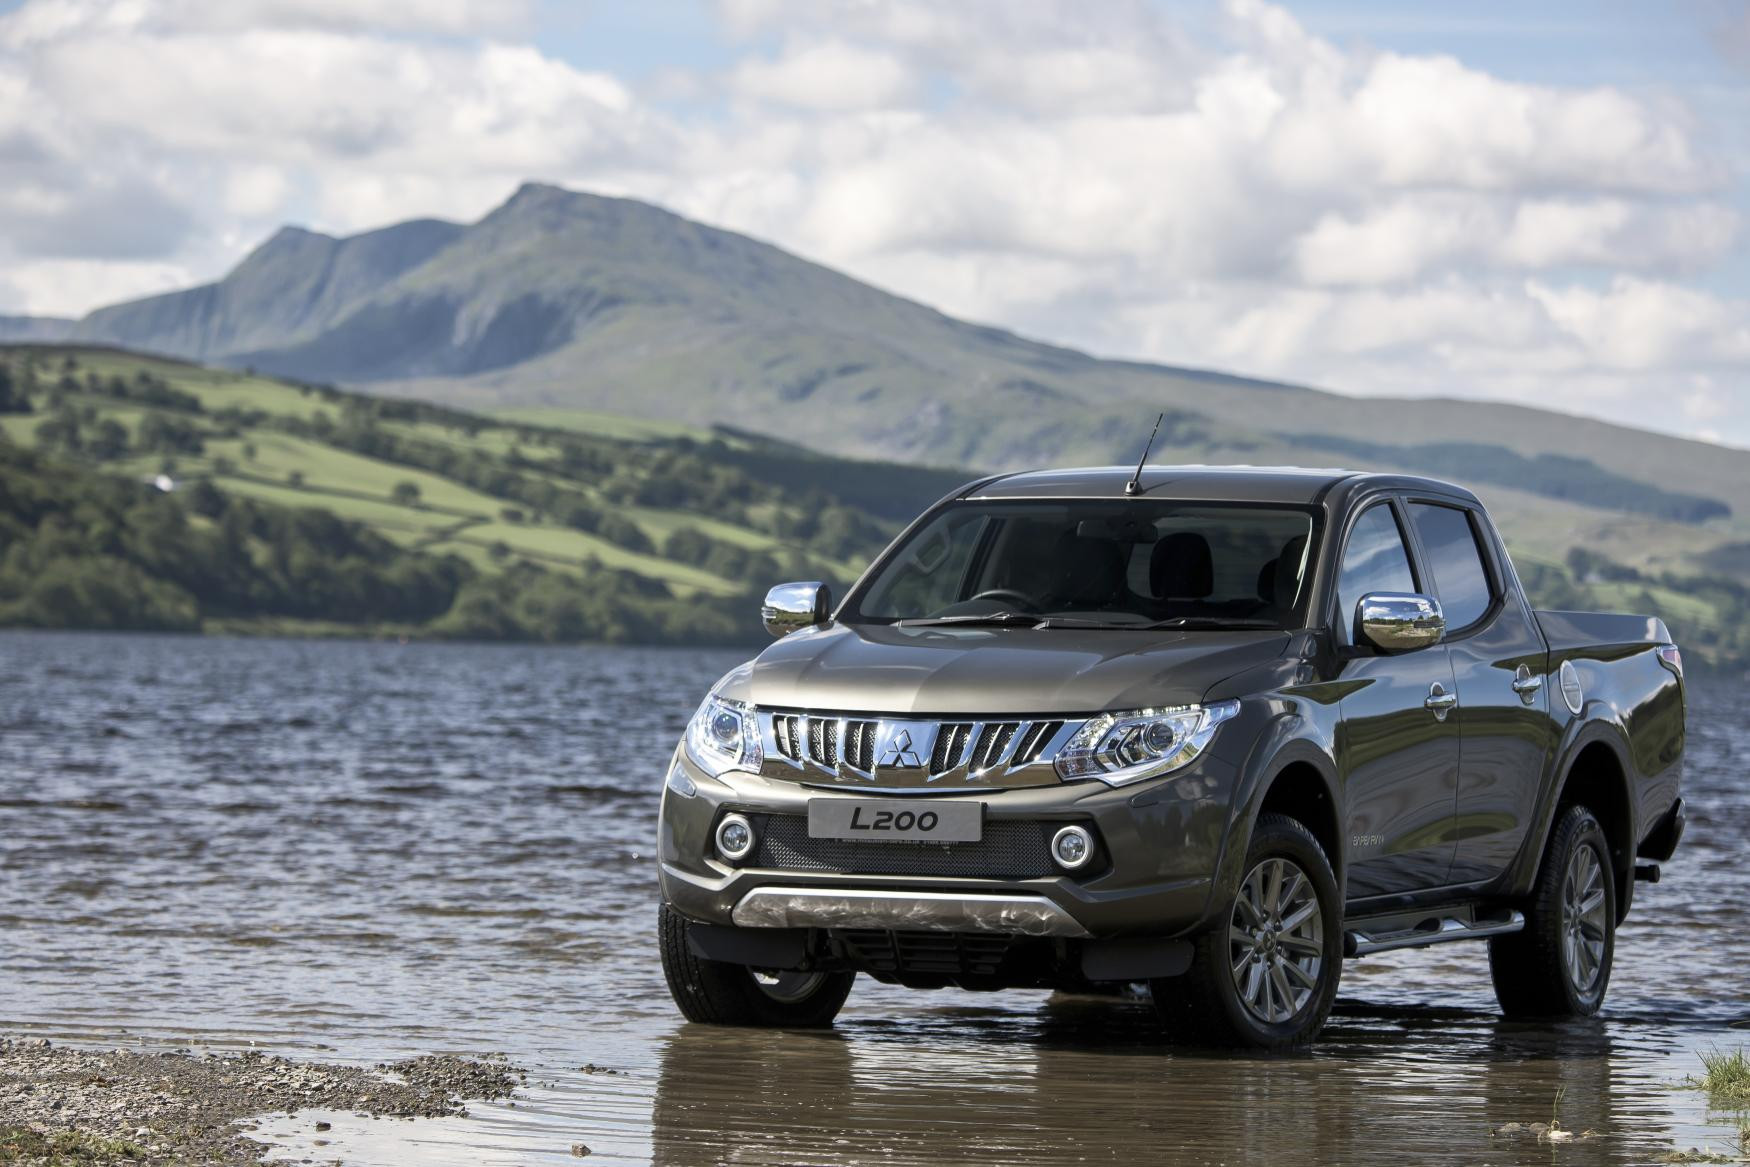 Mitsubishi L200 parked in the shores of a lake